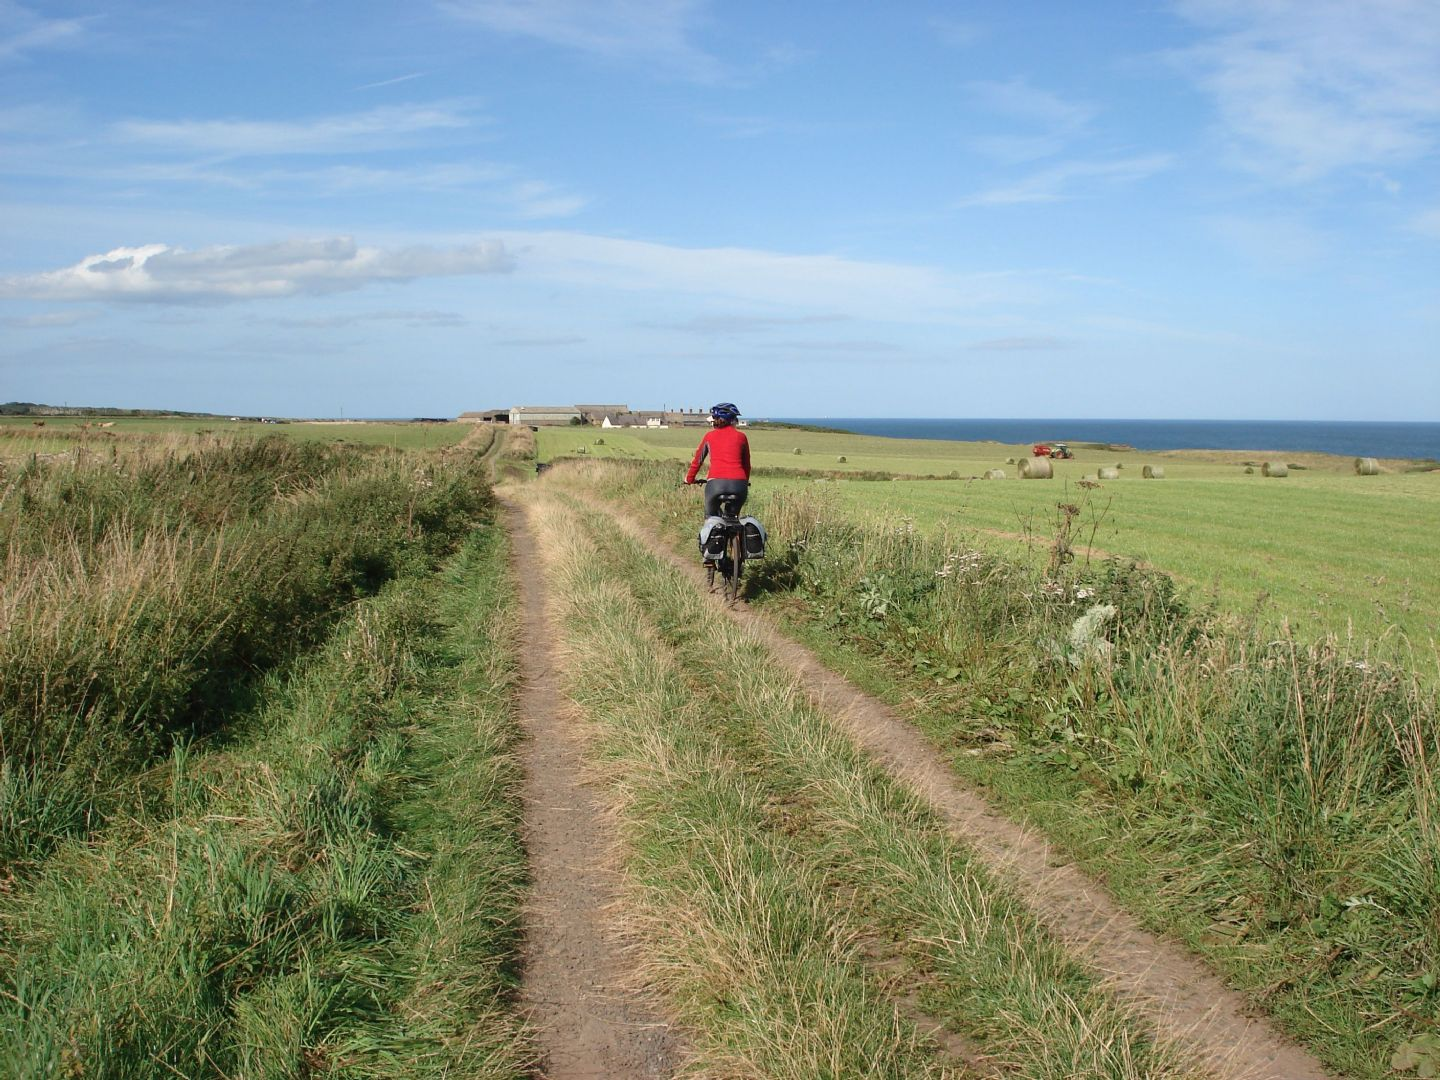 6073491617_39efee3cca_o.jpg - UK - Northumberland Coast - 2 Days - Self-Guided Leisure Cycling Holiday - Leisure Cycling